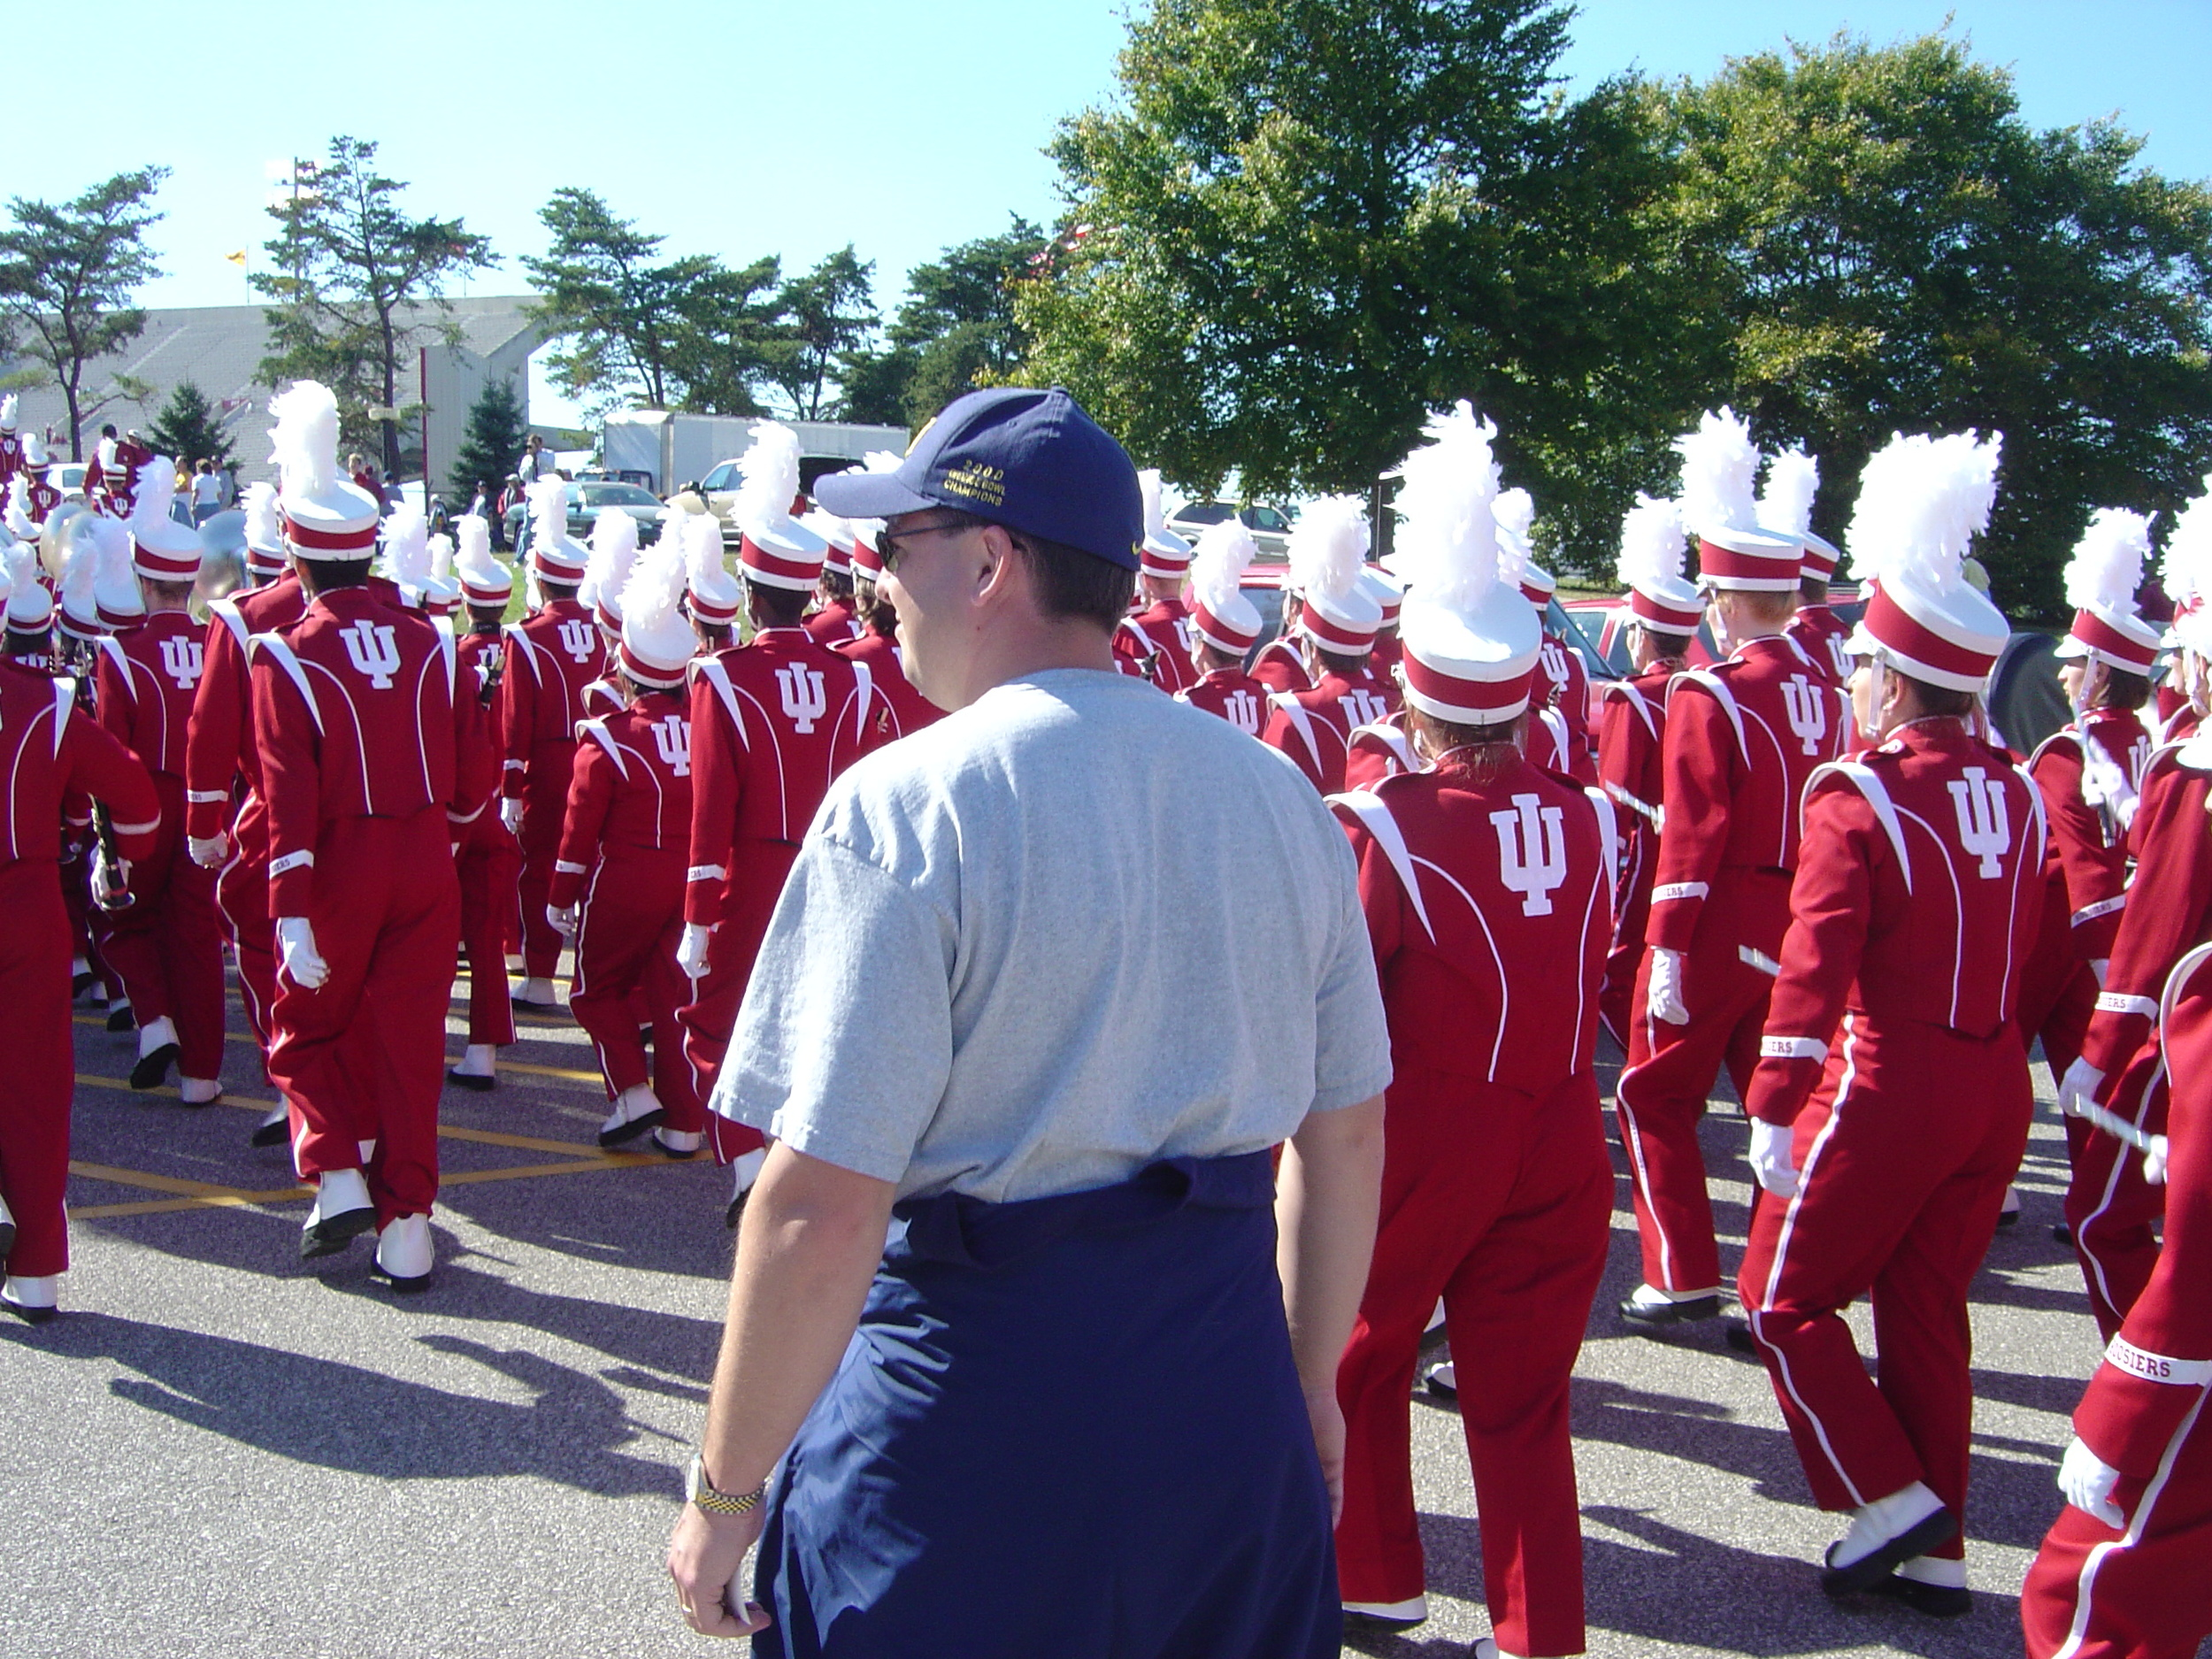 October 2, 2004:  Stephen walks with the Indiana marching band in front of the John Mellencamp Pavilion on the way to witness Michigan's 35-14 victory over the Hoosiers.